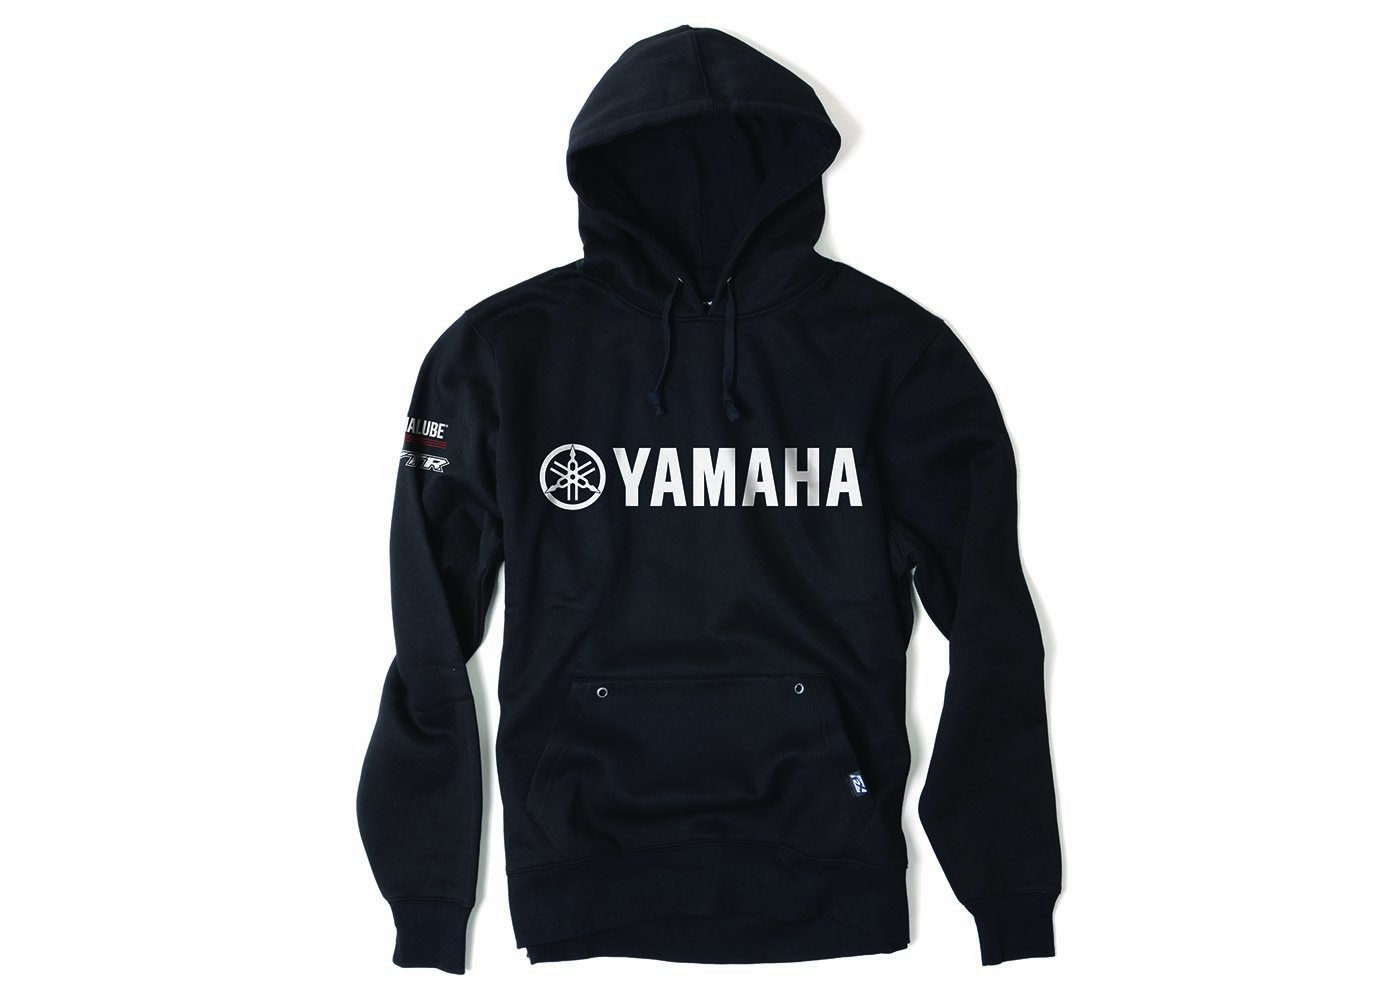 Factory Effex (16-88238) 'YAMAHA' Team Pullover Sweatshirt (Black, XX-Large)